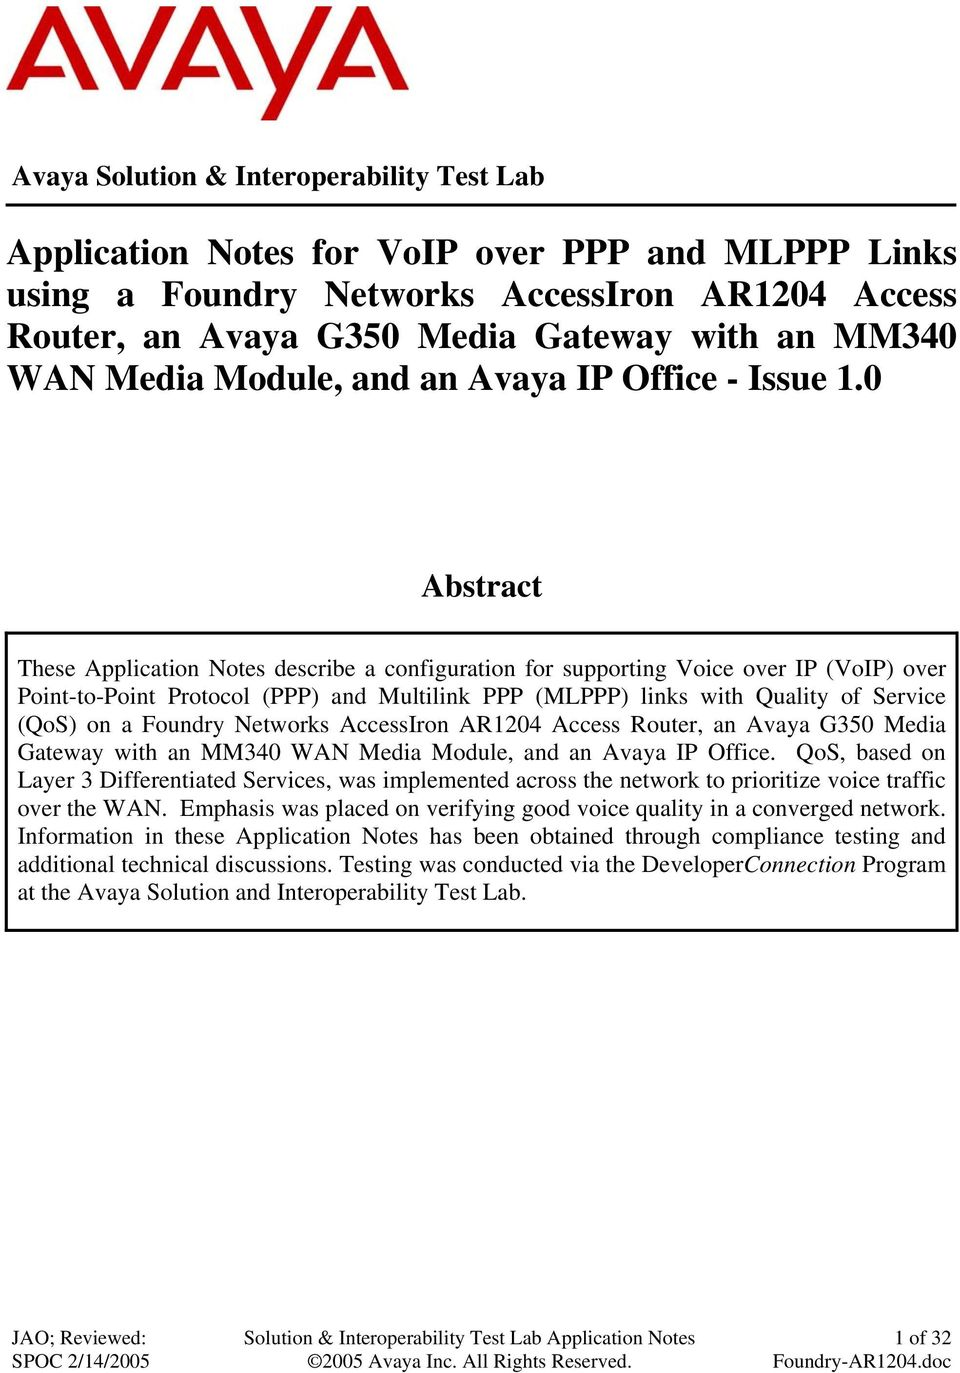 0 Abstract These Application Notes describe a configuration for supporting Voice over IP (VoIP) over Point-to-Point Protocol (PPP) and Multilink PPP (MLPPP) links with Quality of Service (QoS) on a